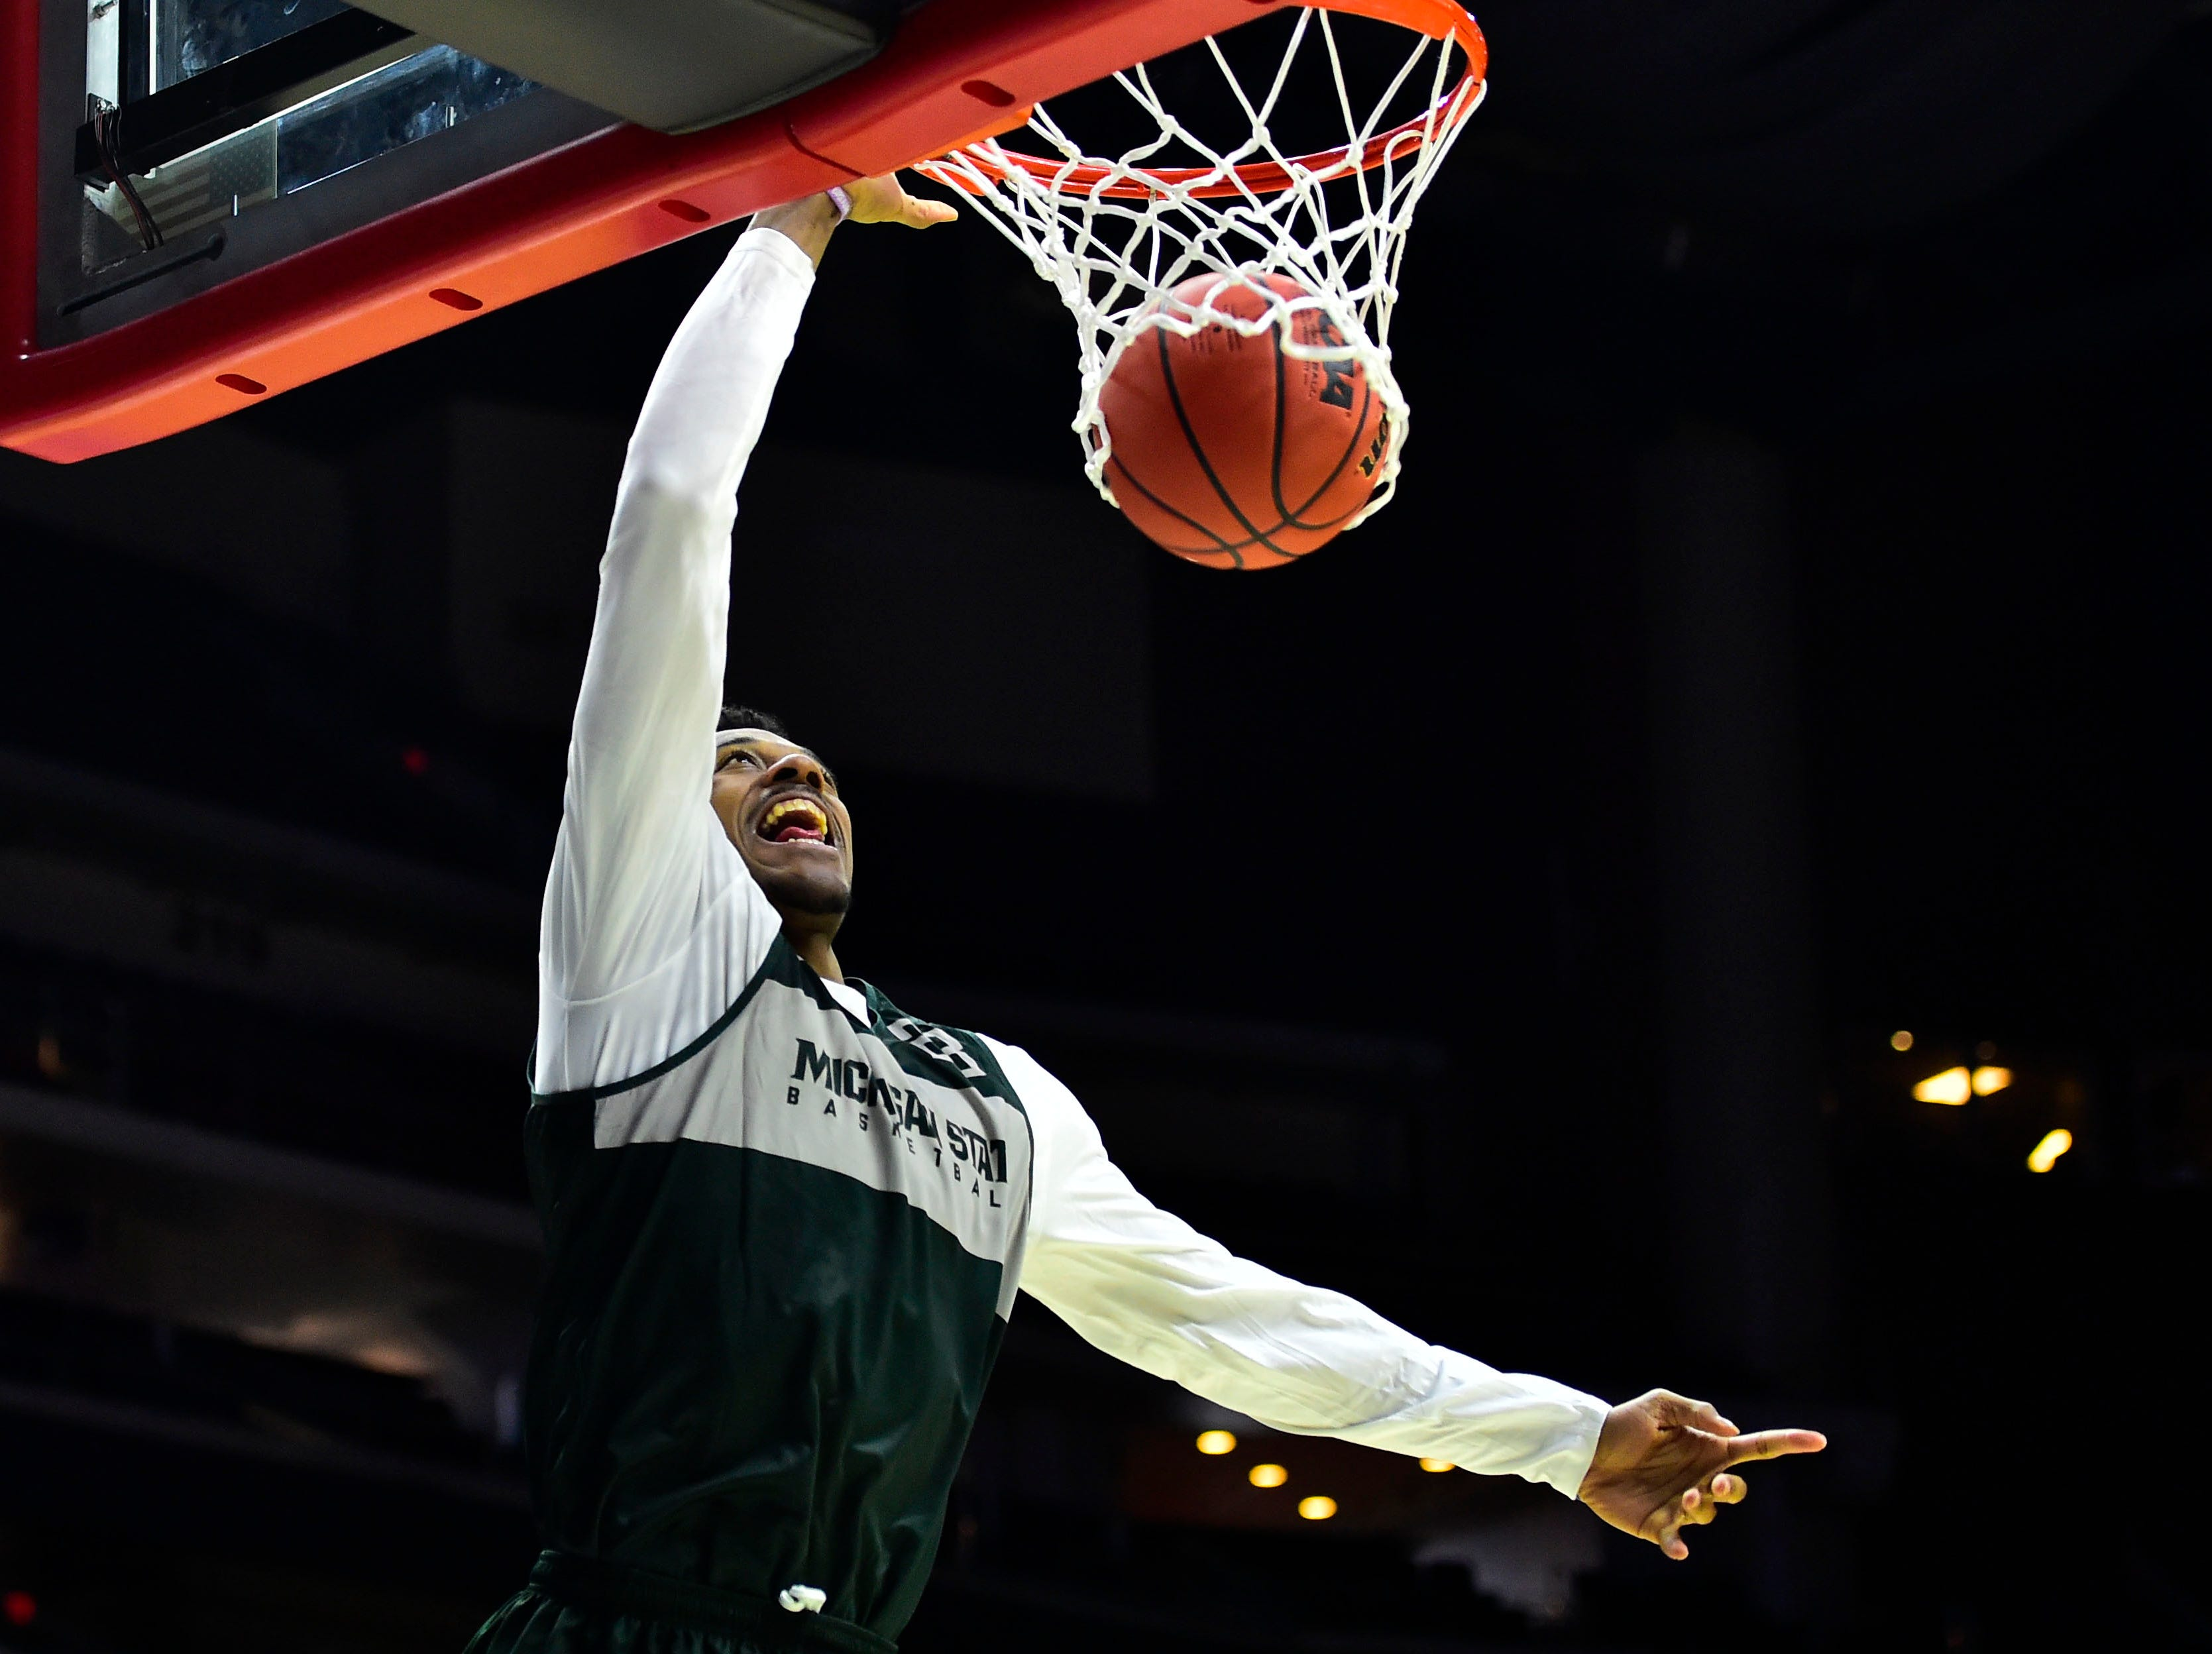 Mar 20, 2019; Des Moines, IA, USA; Michigan State Spartans forward Xavier Tillman (23) dunks the ball during practice before the first round of the 2019 NCAA Tournament at Wells Fargo Arena. Mandatory Credit: Jeffery Becker-USA TODAY Sports